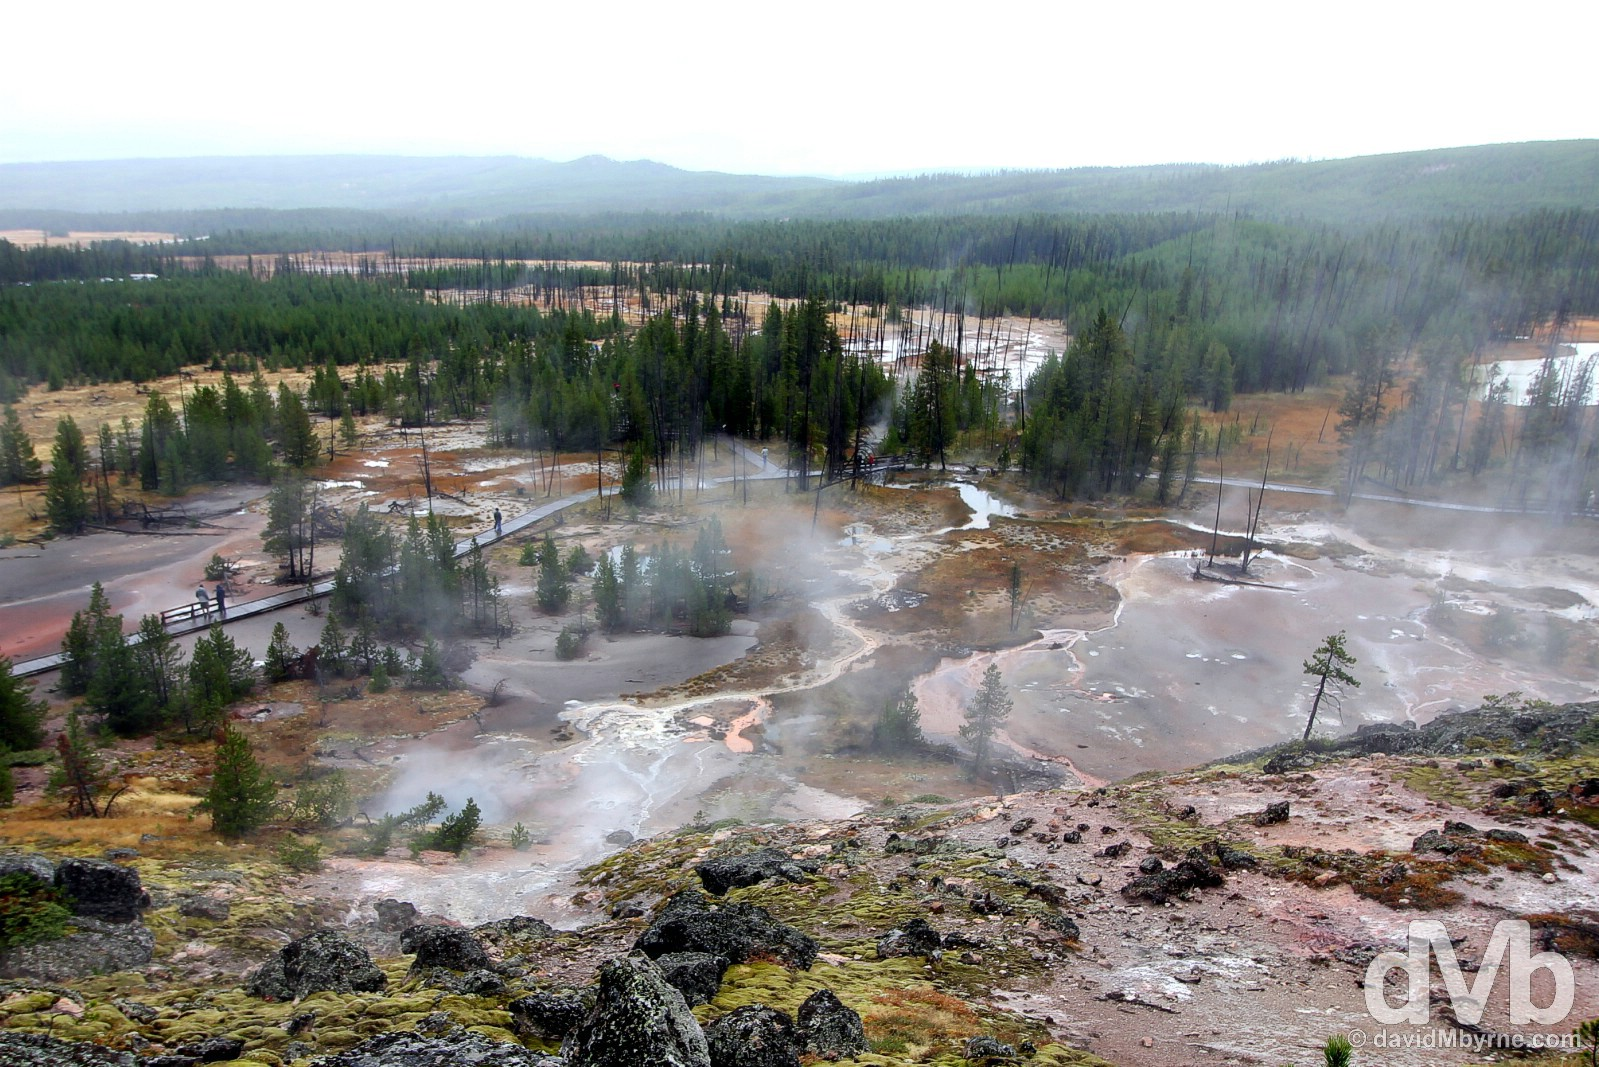 The Artists Paintpots geothermal feature of Yellowstone National Park, Wyoming, USA. September 5, 2016.